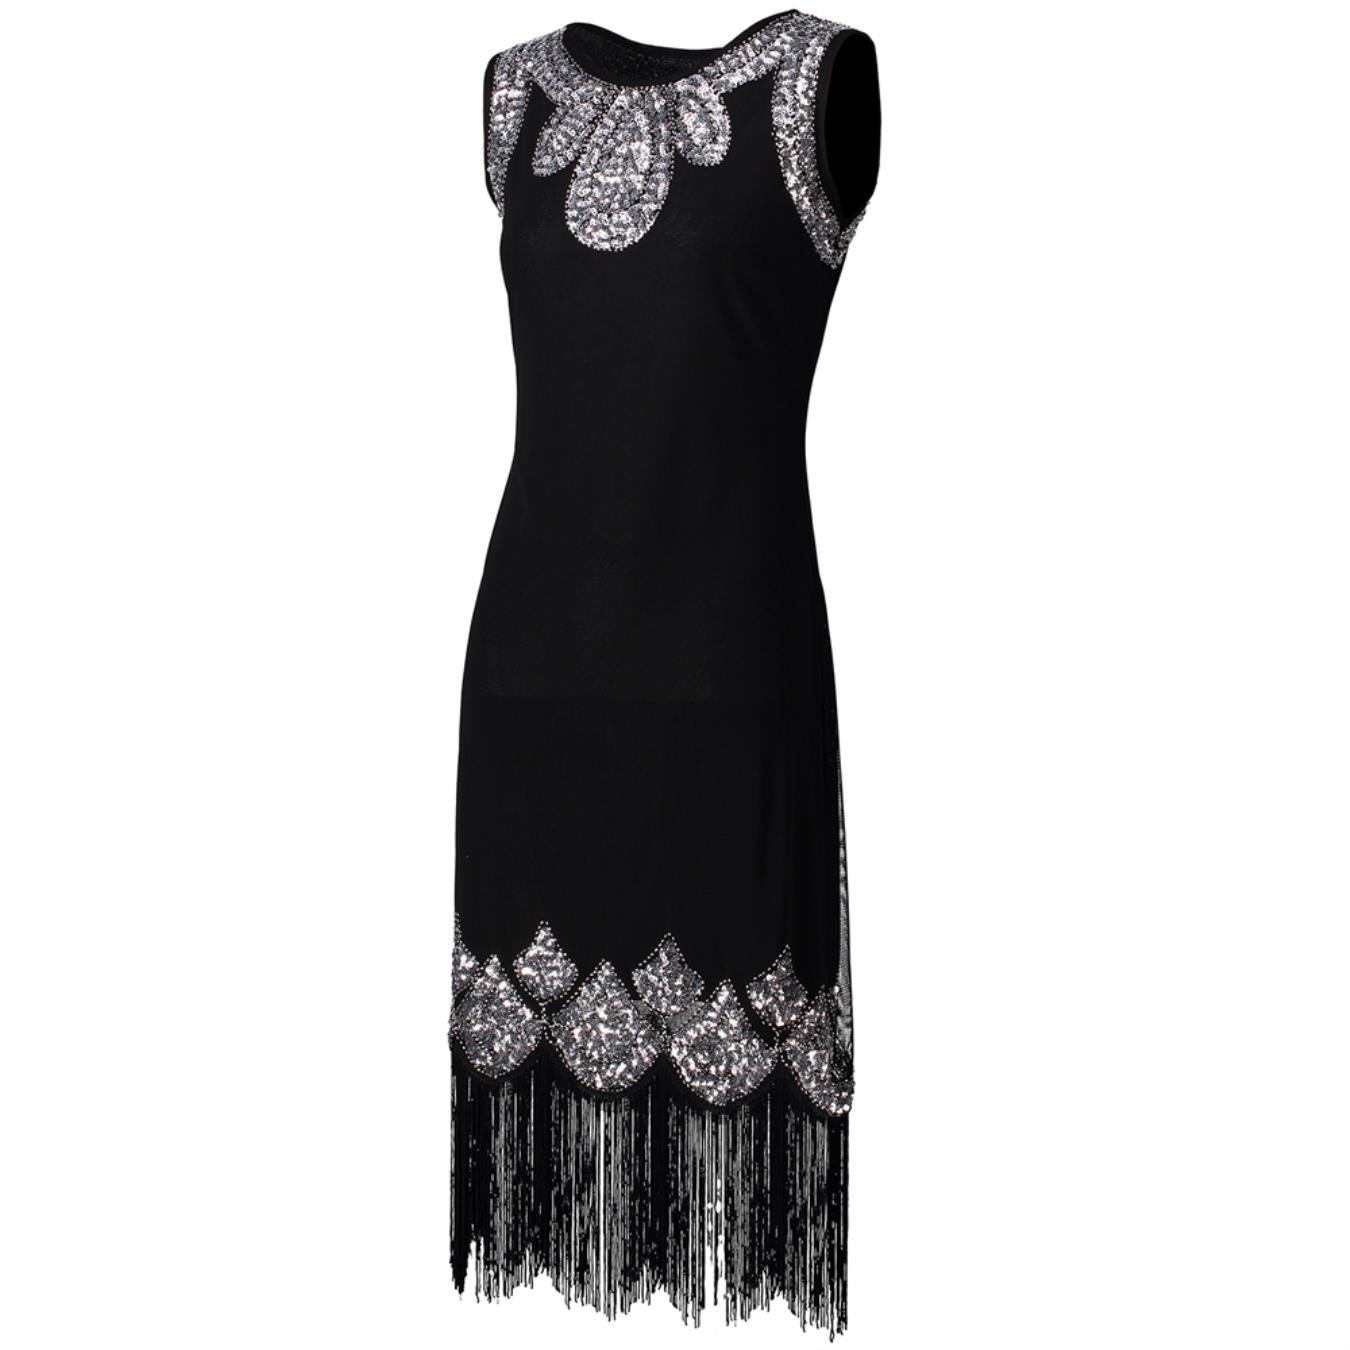 d0fb755ab96 KHGYSJ Stretchy Little Black Dress Women Vintage Fringe Embellished Sequin  Beaded Flapper Dress at Amazon Women s Clothing store